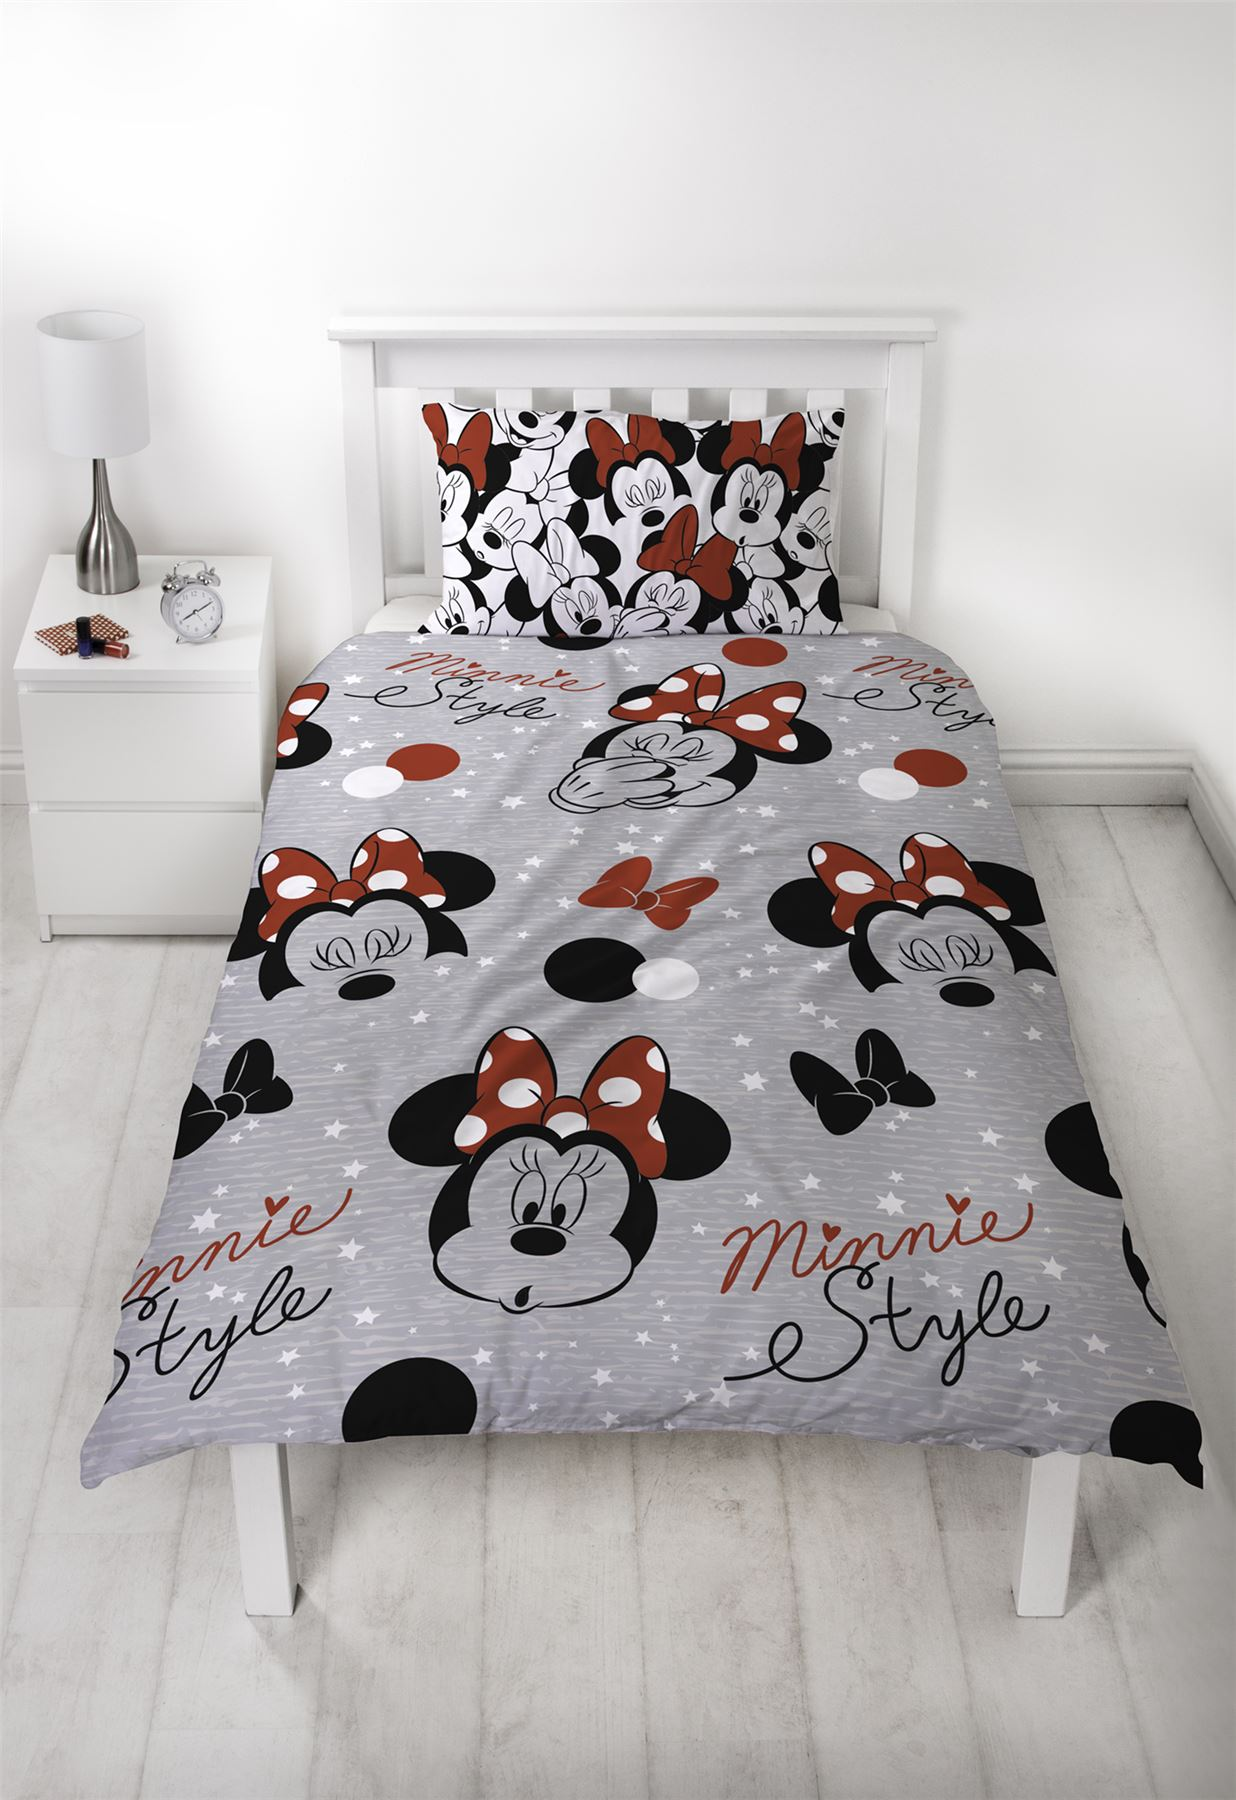 Disney-Minnie-Mouse-039-Cute-039-Single-Double-Duvet-Cover-Reversible-Bedding-Set thumbnail 5